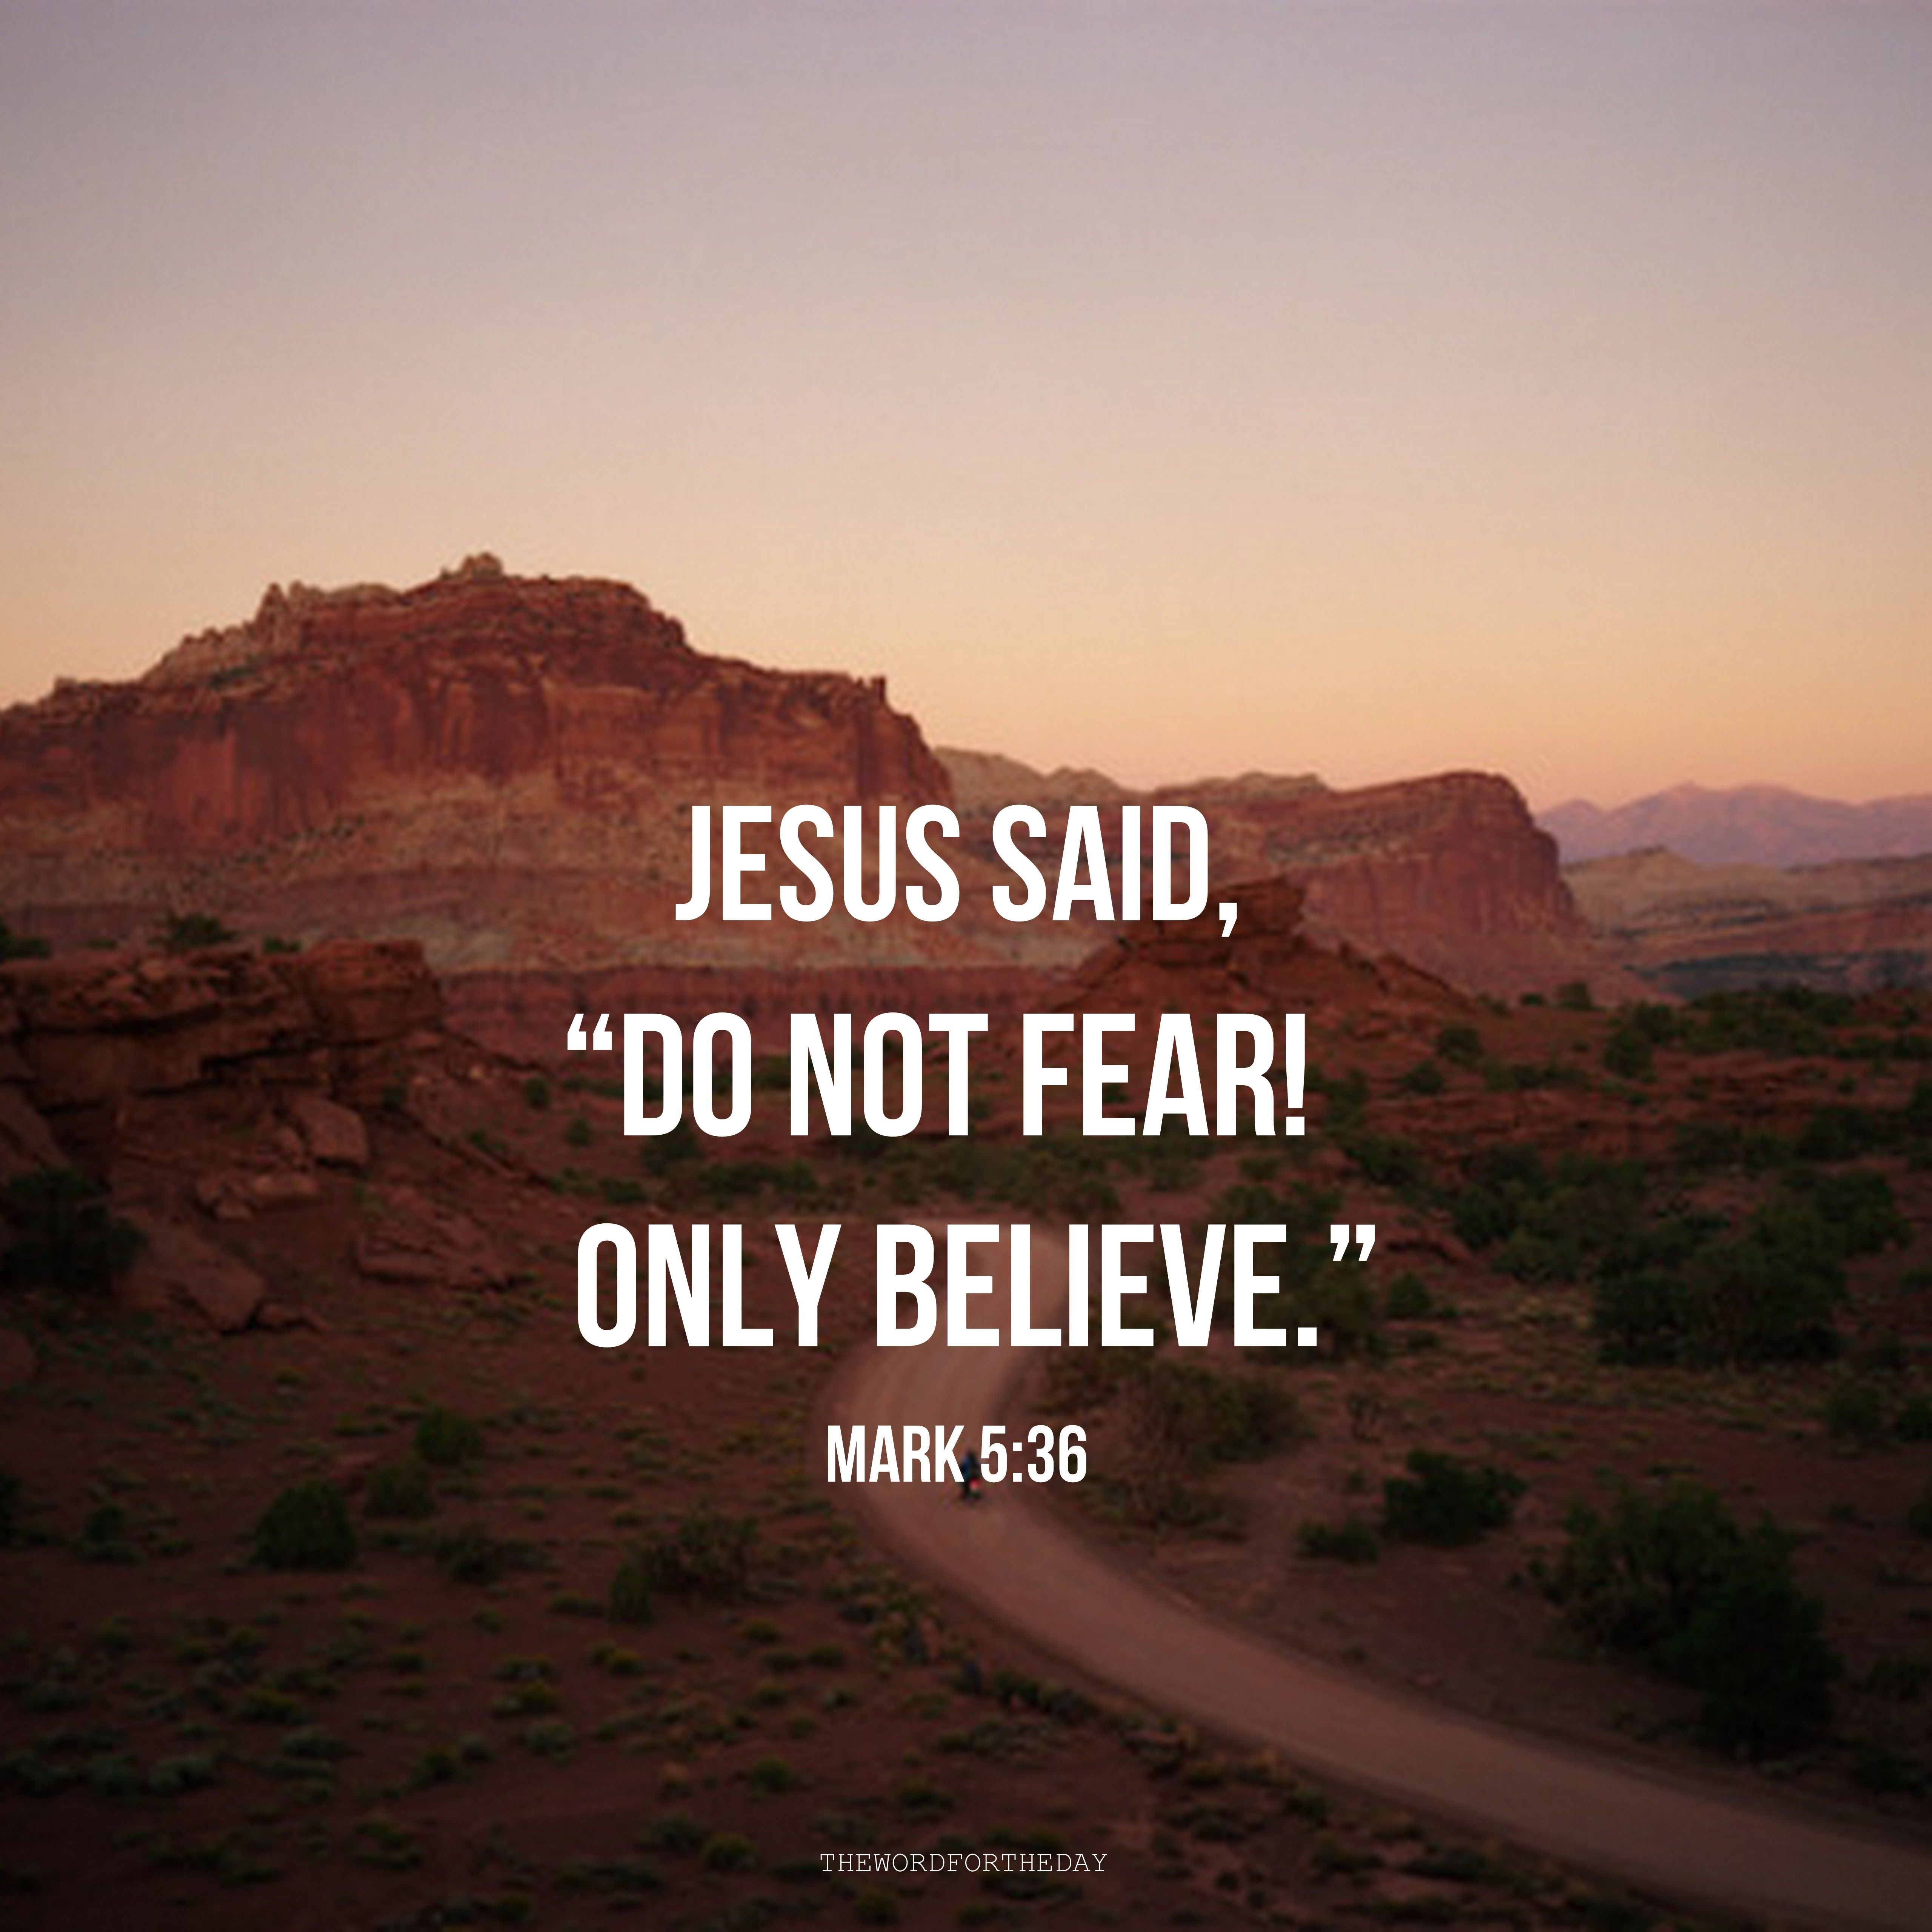 Bible Inspirational Quotes Of The Day: BIBLE VERSE, HILLS, BIBLE QUOTES, THE WORD FOR THE DAY